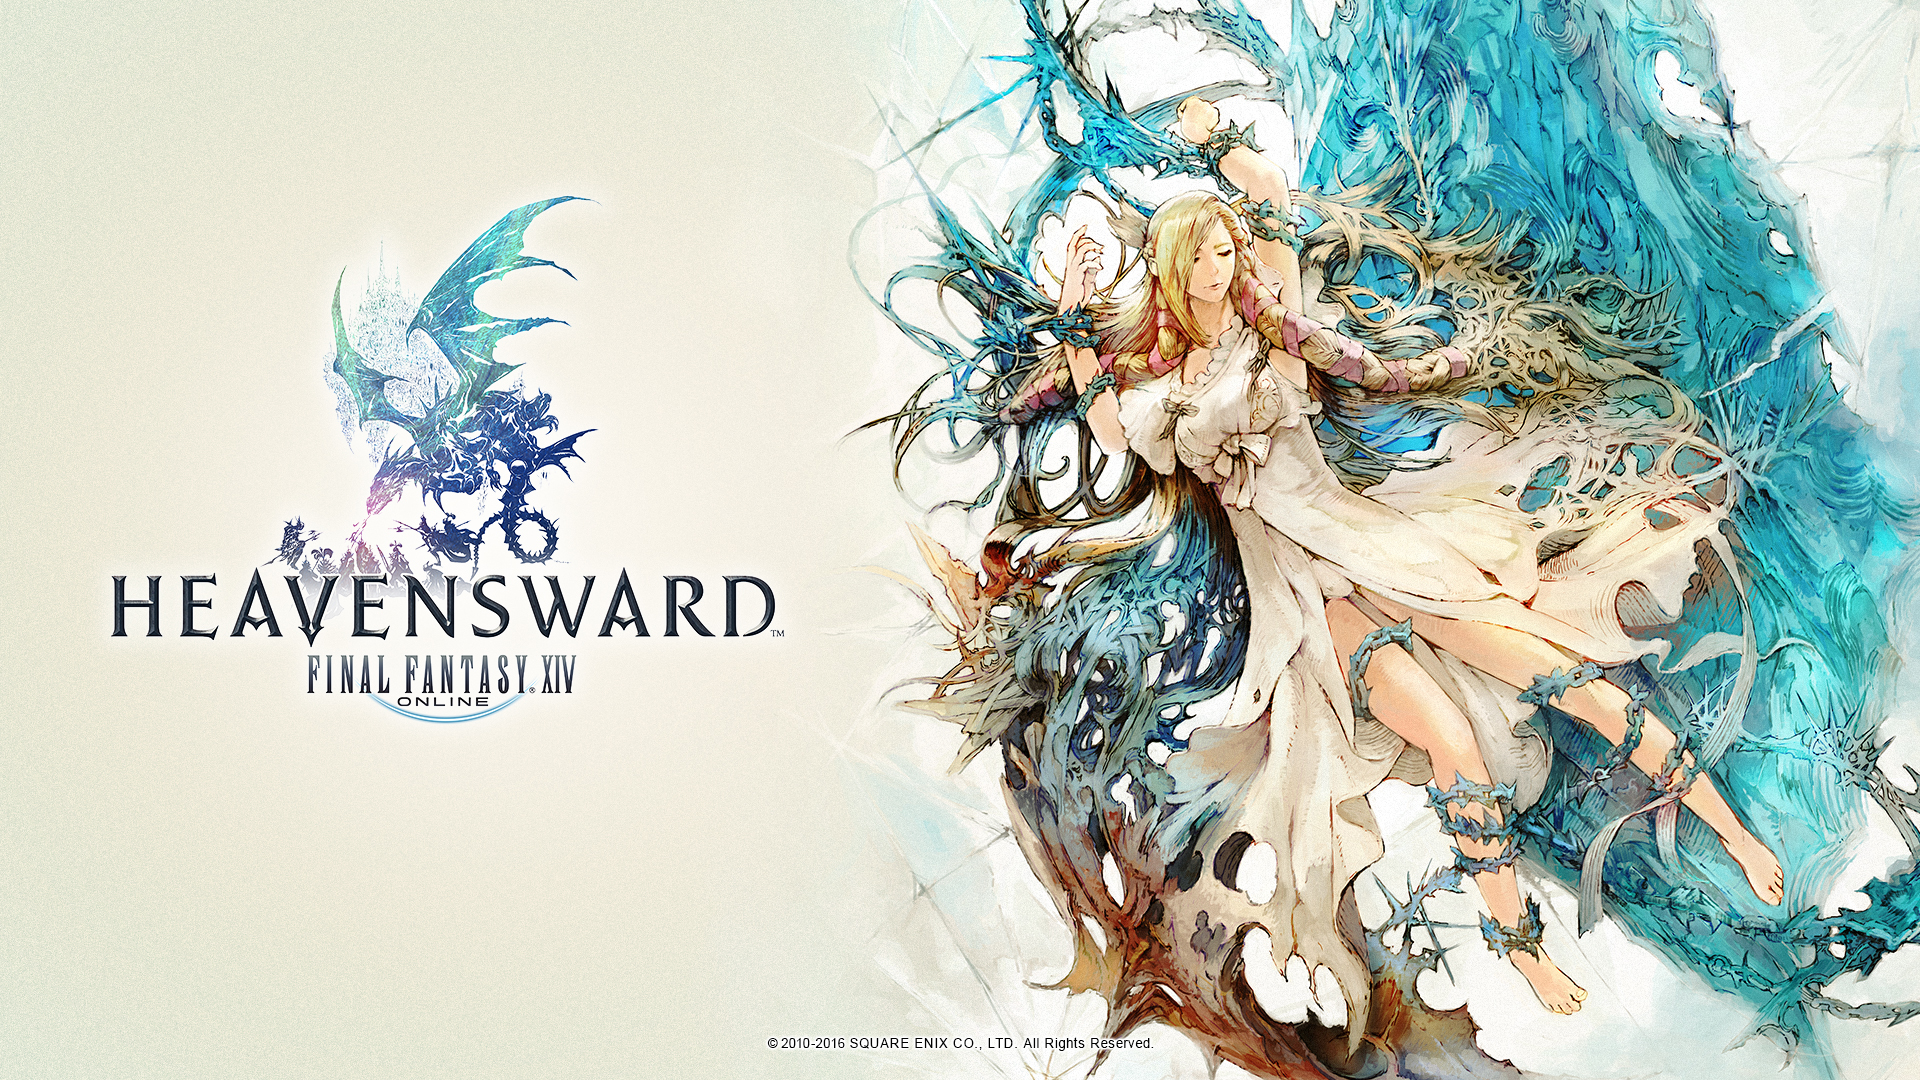 FINAL FANTASY XIV Fan Kit